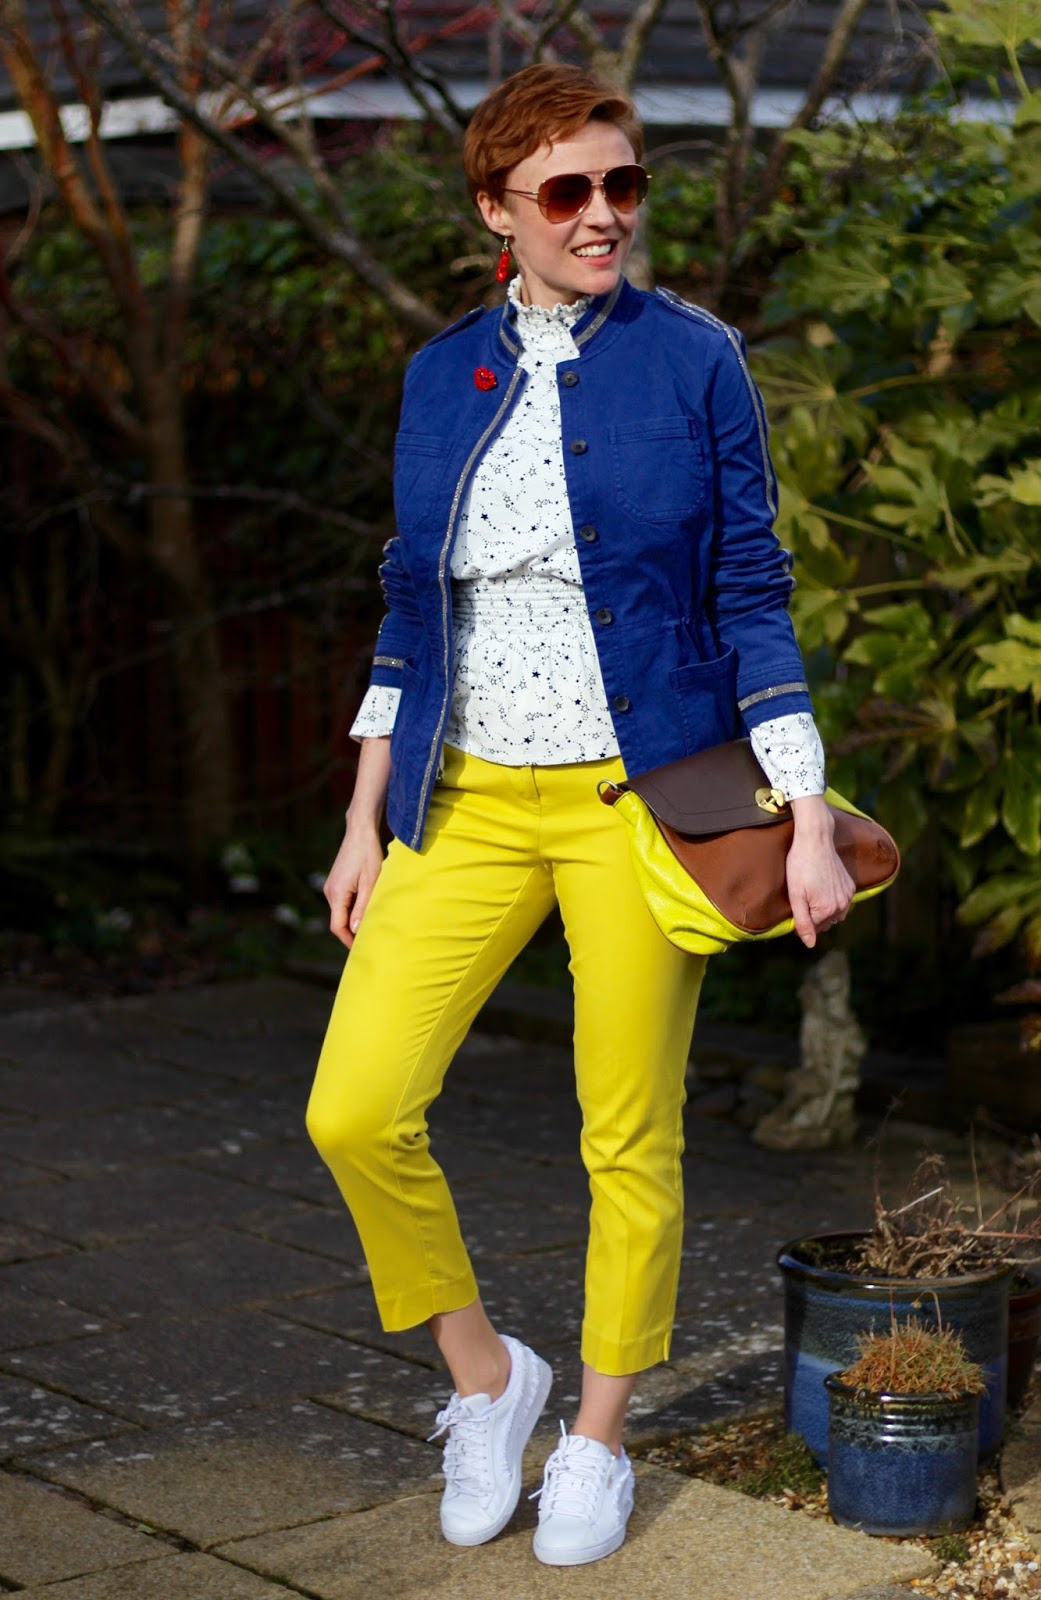 Yellow Trousers and a Blue Band Jacket | Over 40 Fashion | Fake Fabulous